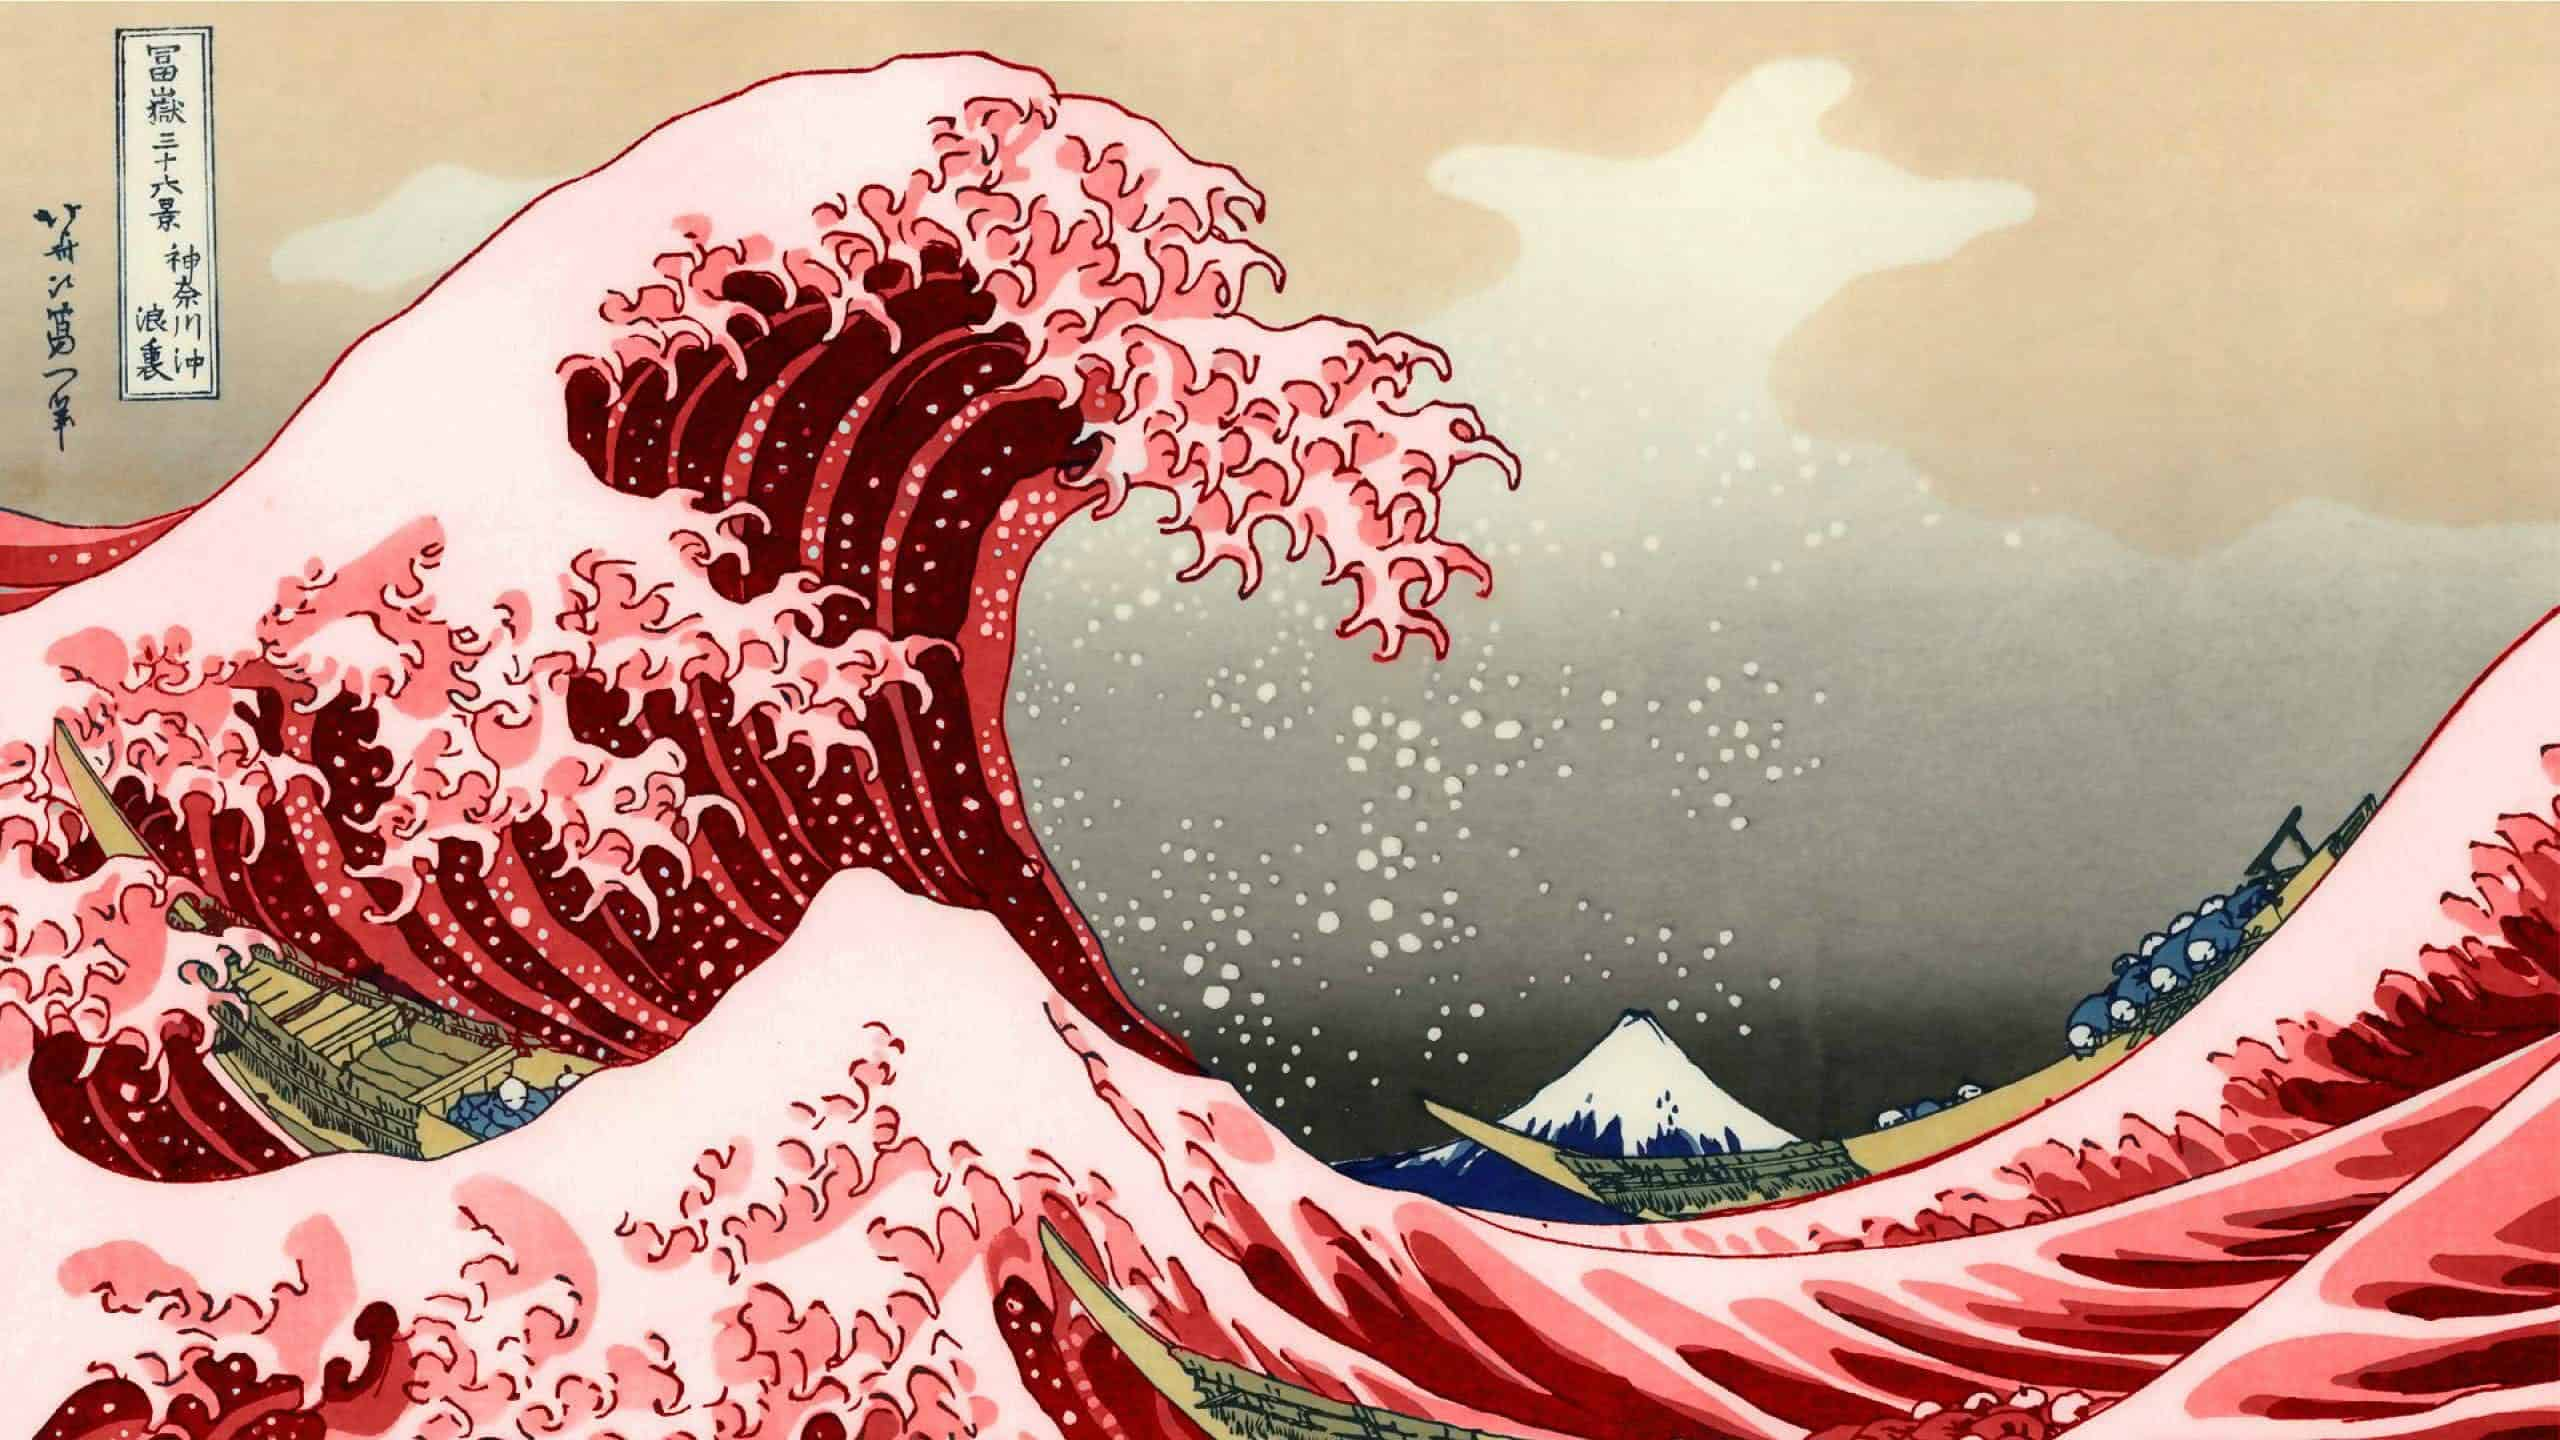 Cars And Bikes Wallpaper For Mobile The Great Wave Off Kanagawa Wqhd 1440p Wallpaper Pixelz